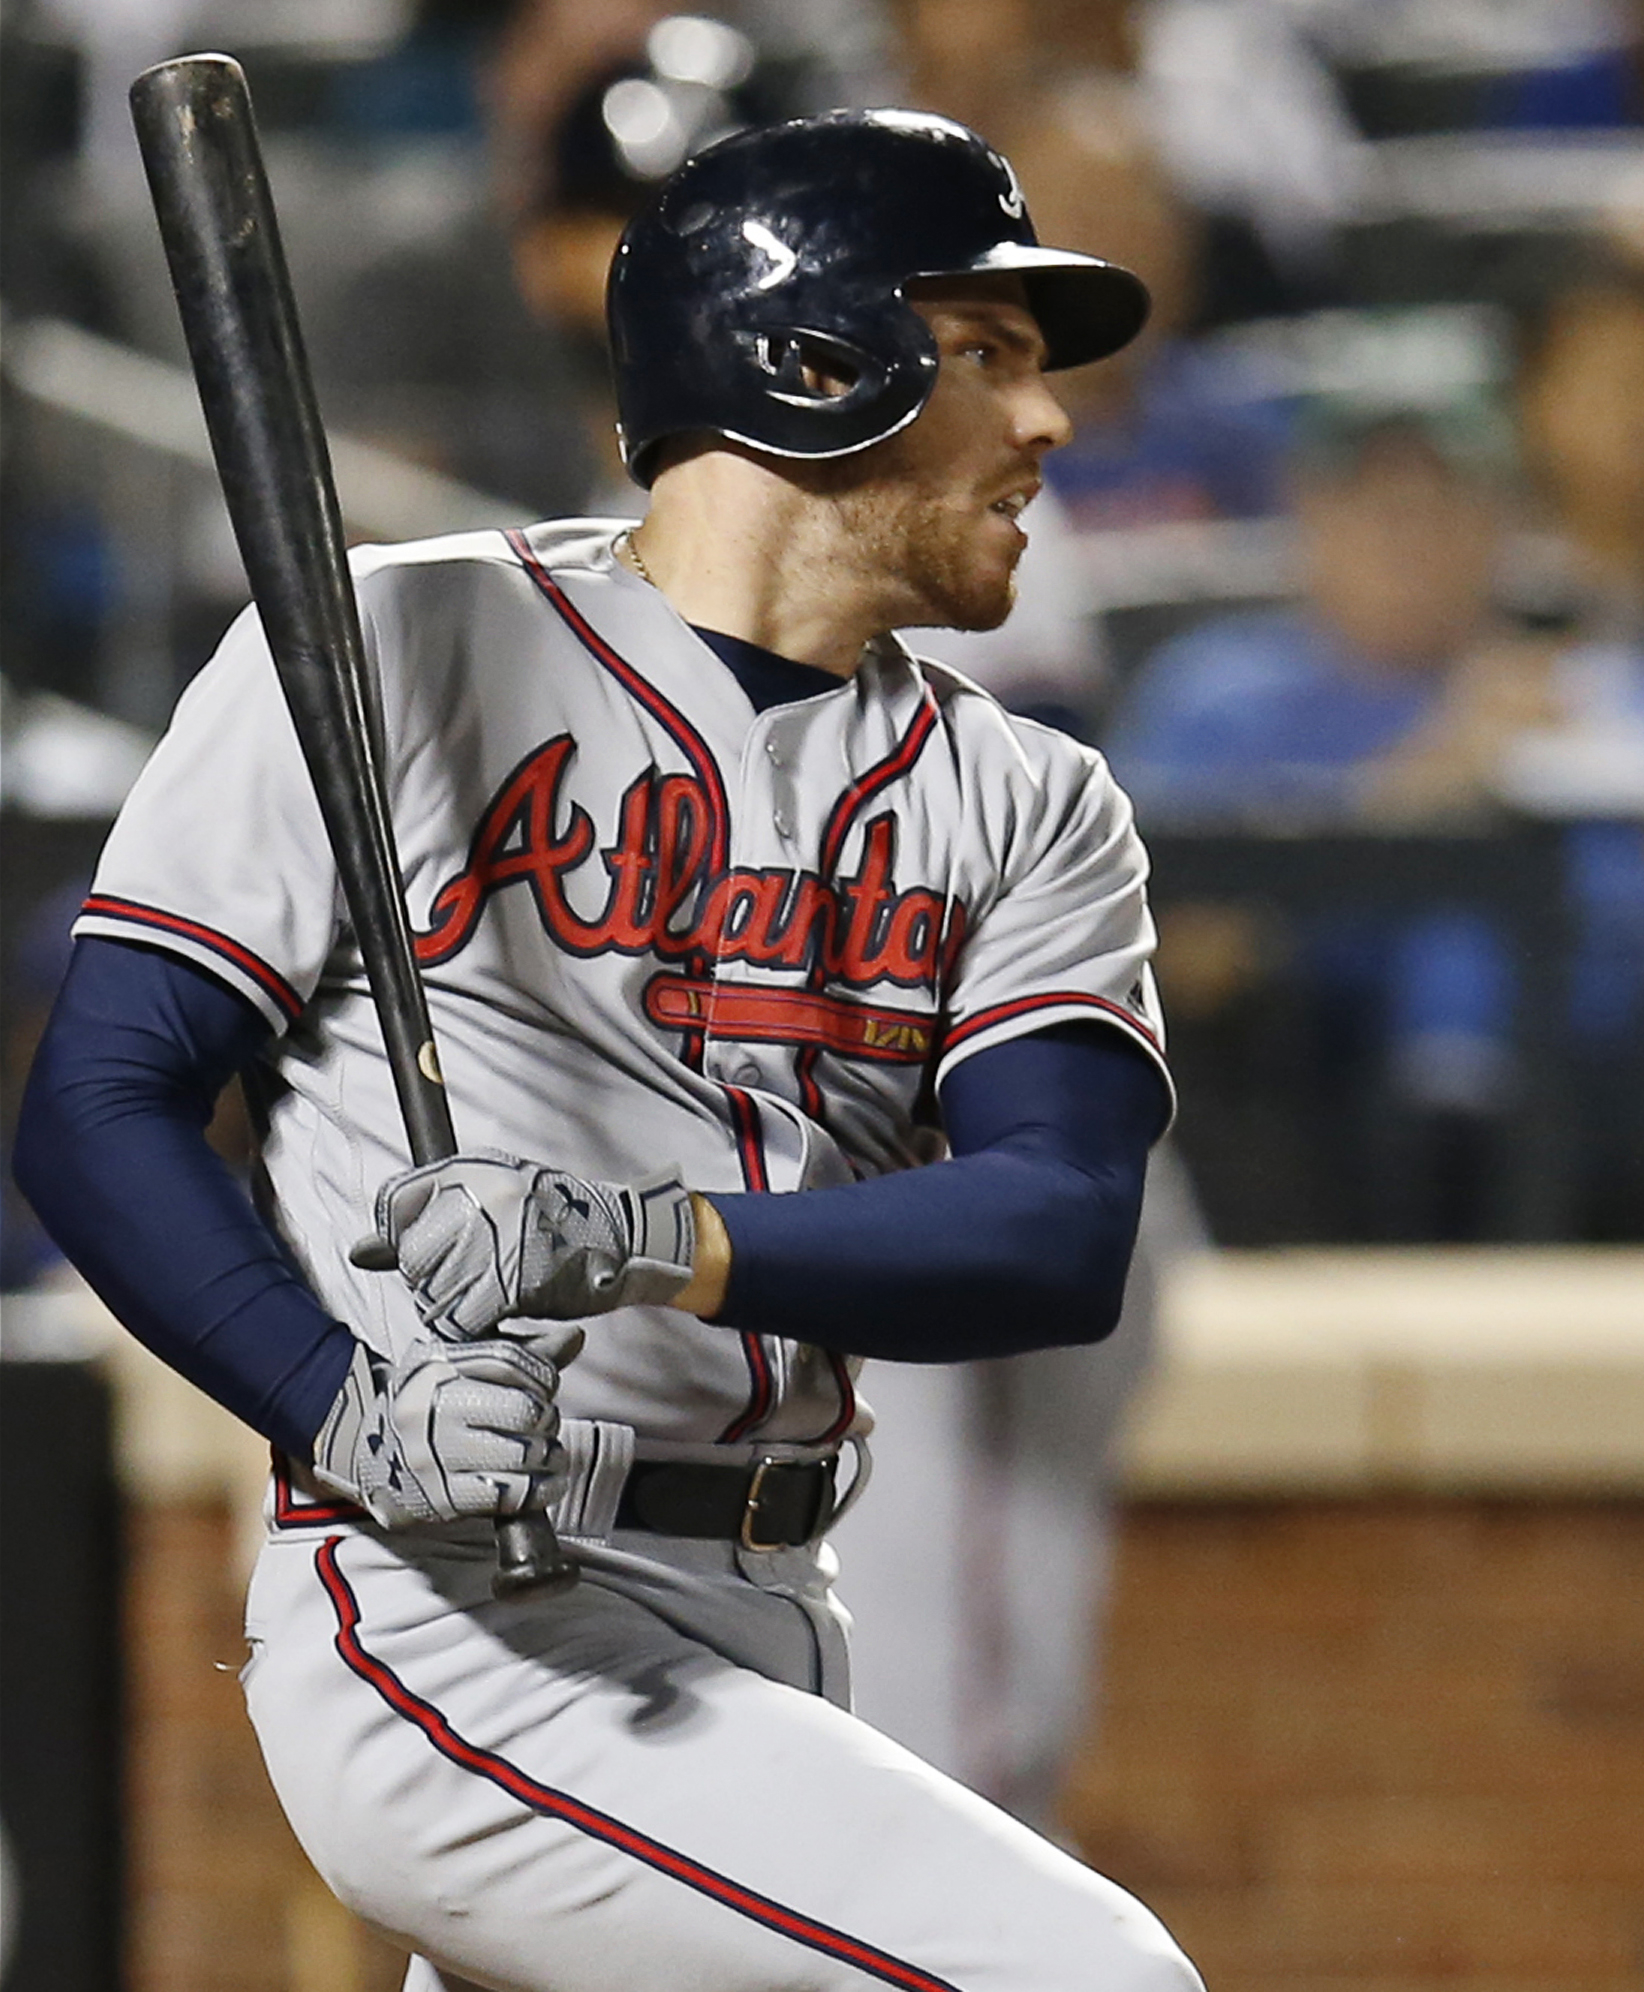 Atlanta Braves' Freddie Freeman hits a seventh-inning infield single in a baseball game against the New York Mets, Monday, Sept. 19, 2016, in New York. Freeman had a fourth-inning, two-run double and a first inning solo home run. (AP Photo/Kathy Willens)